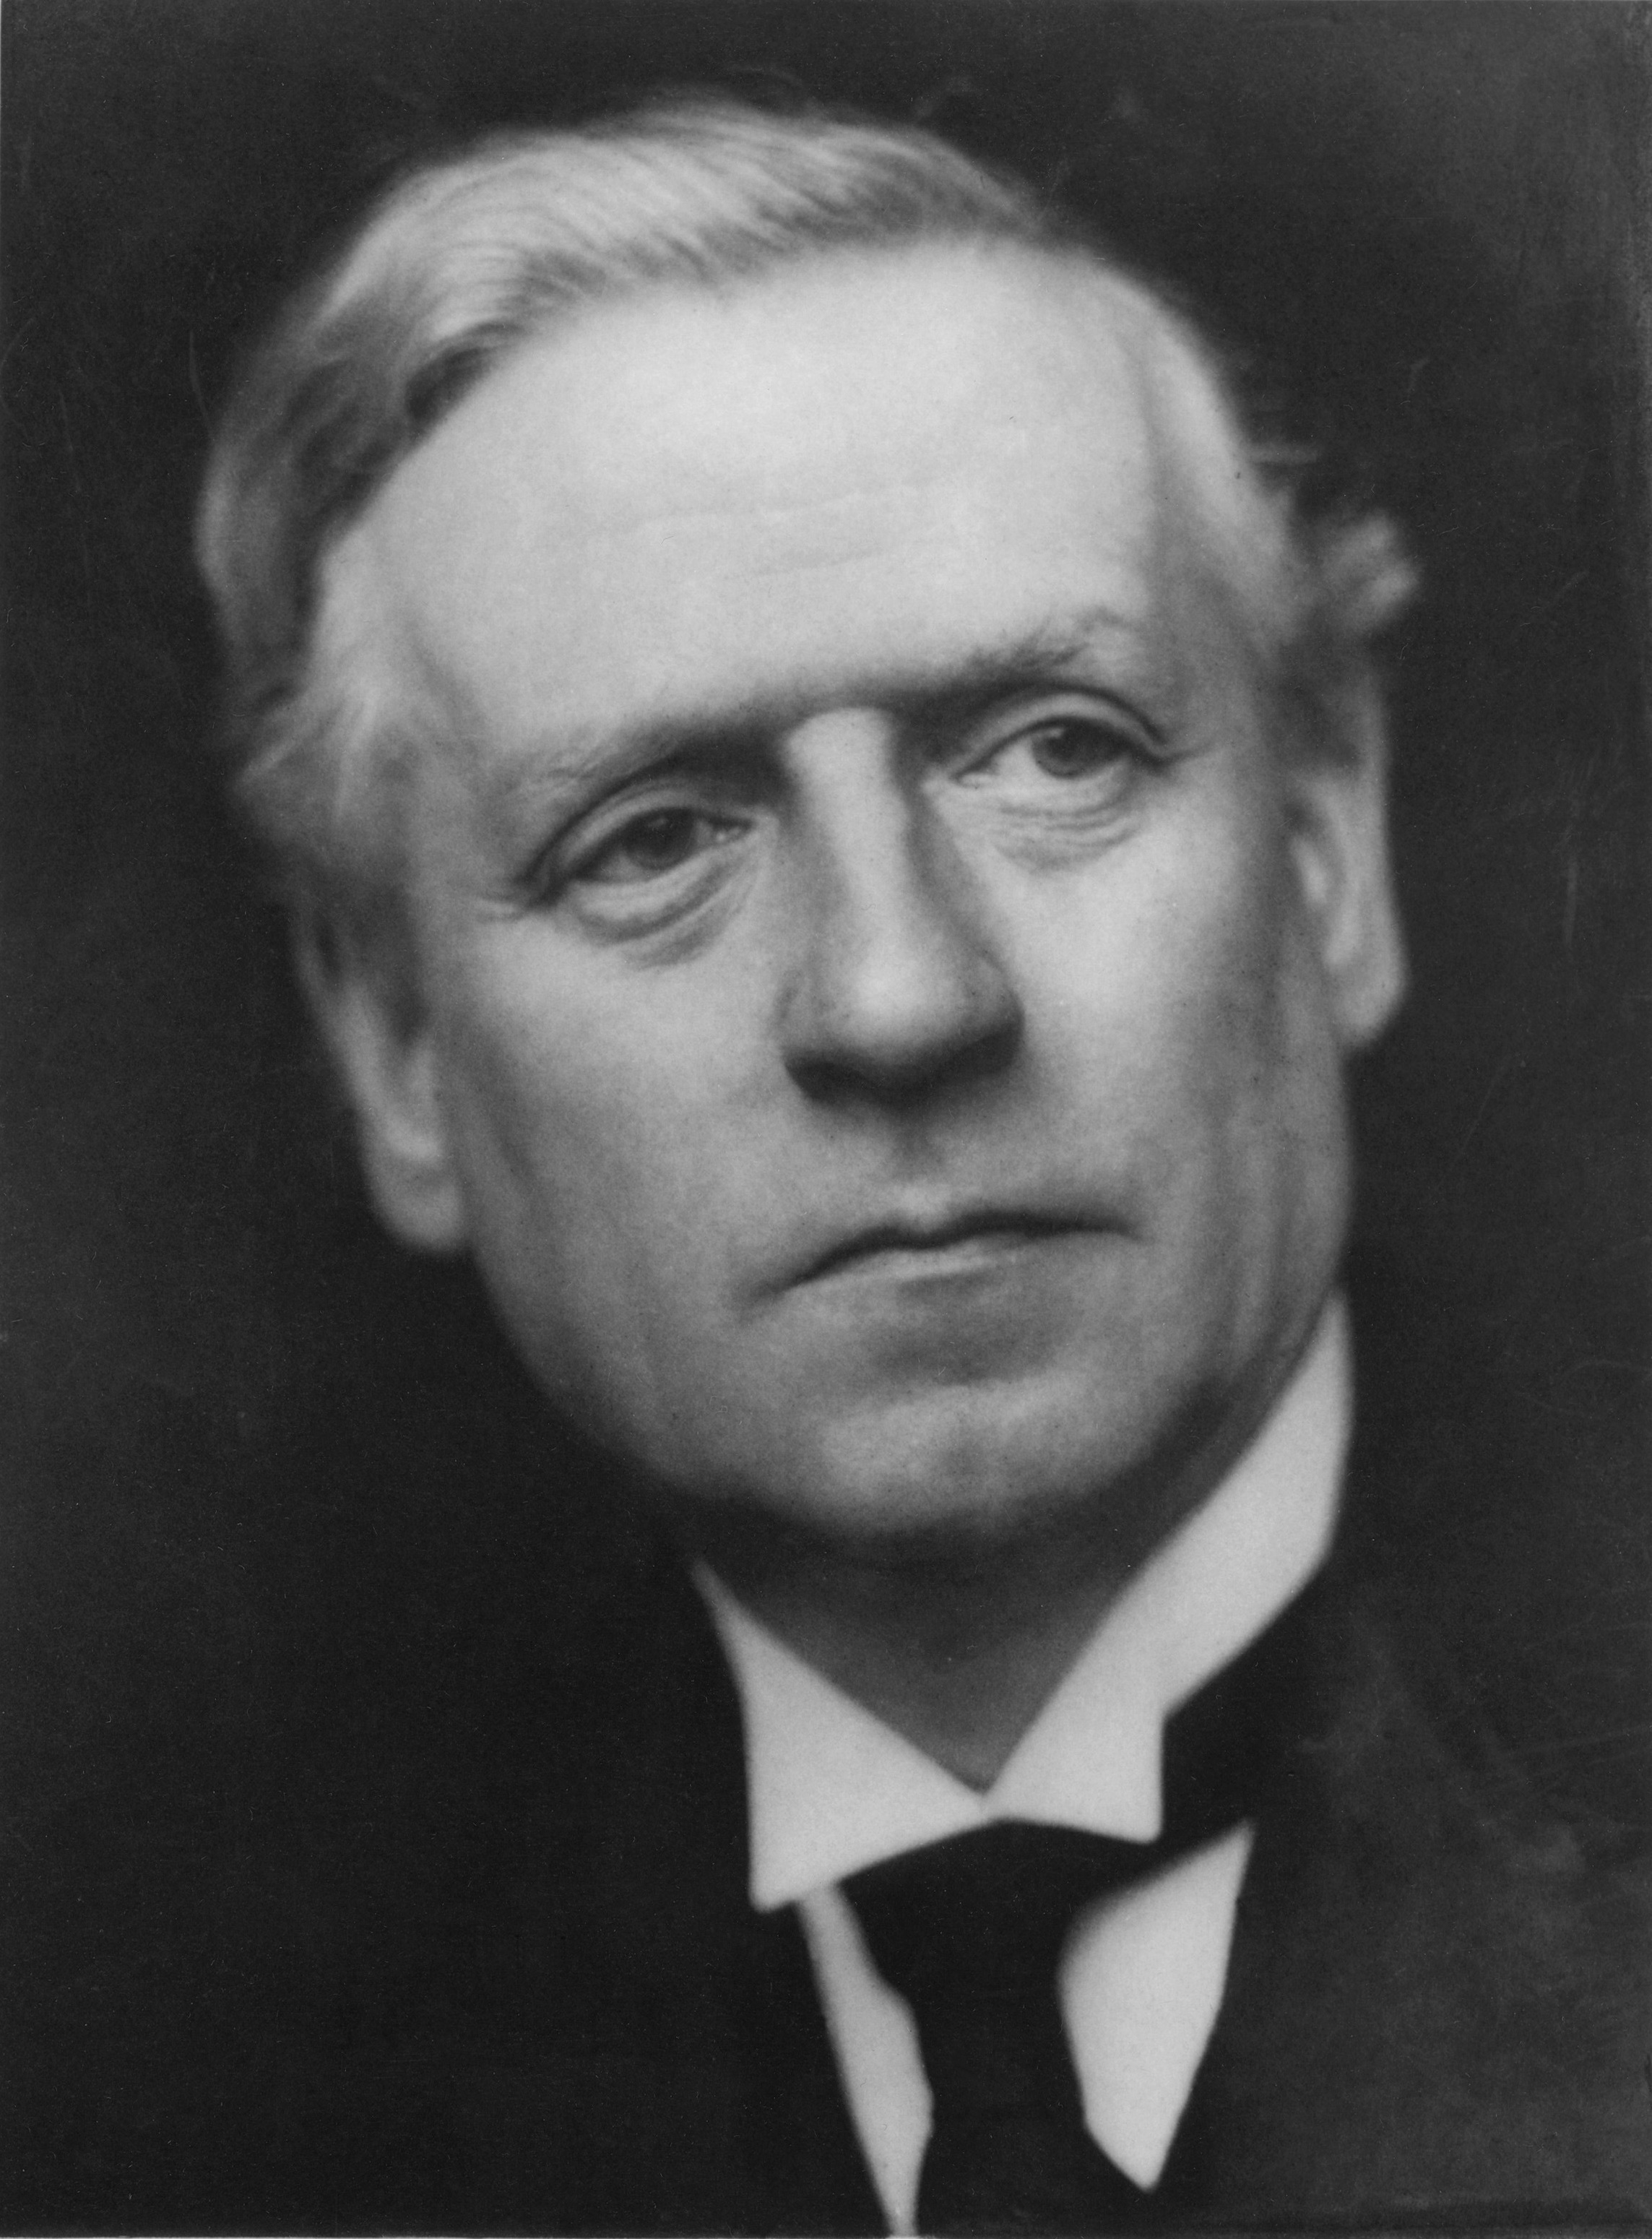 H H Asquith